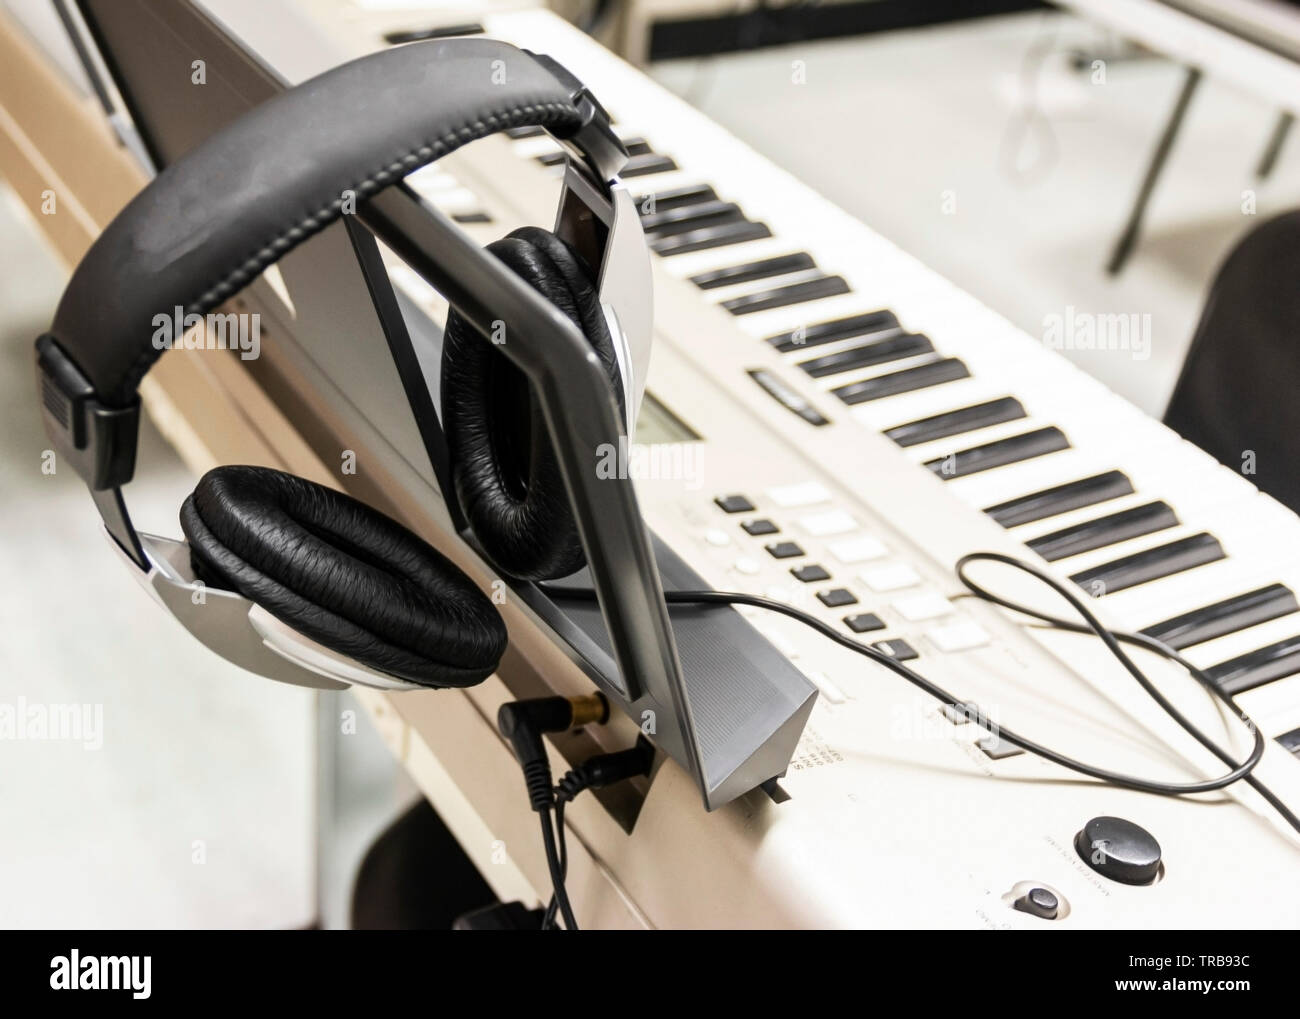 Headphones are resting on an electric piano ready to record music. - Stock Image